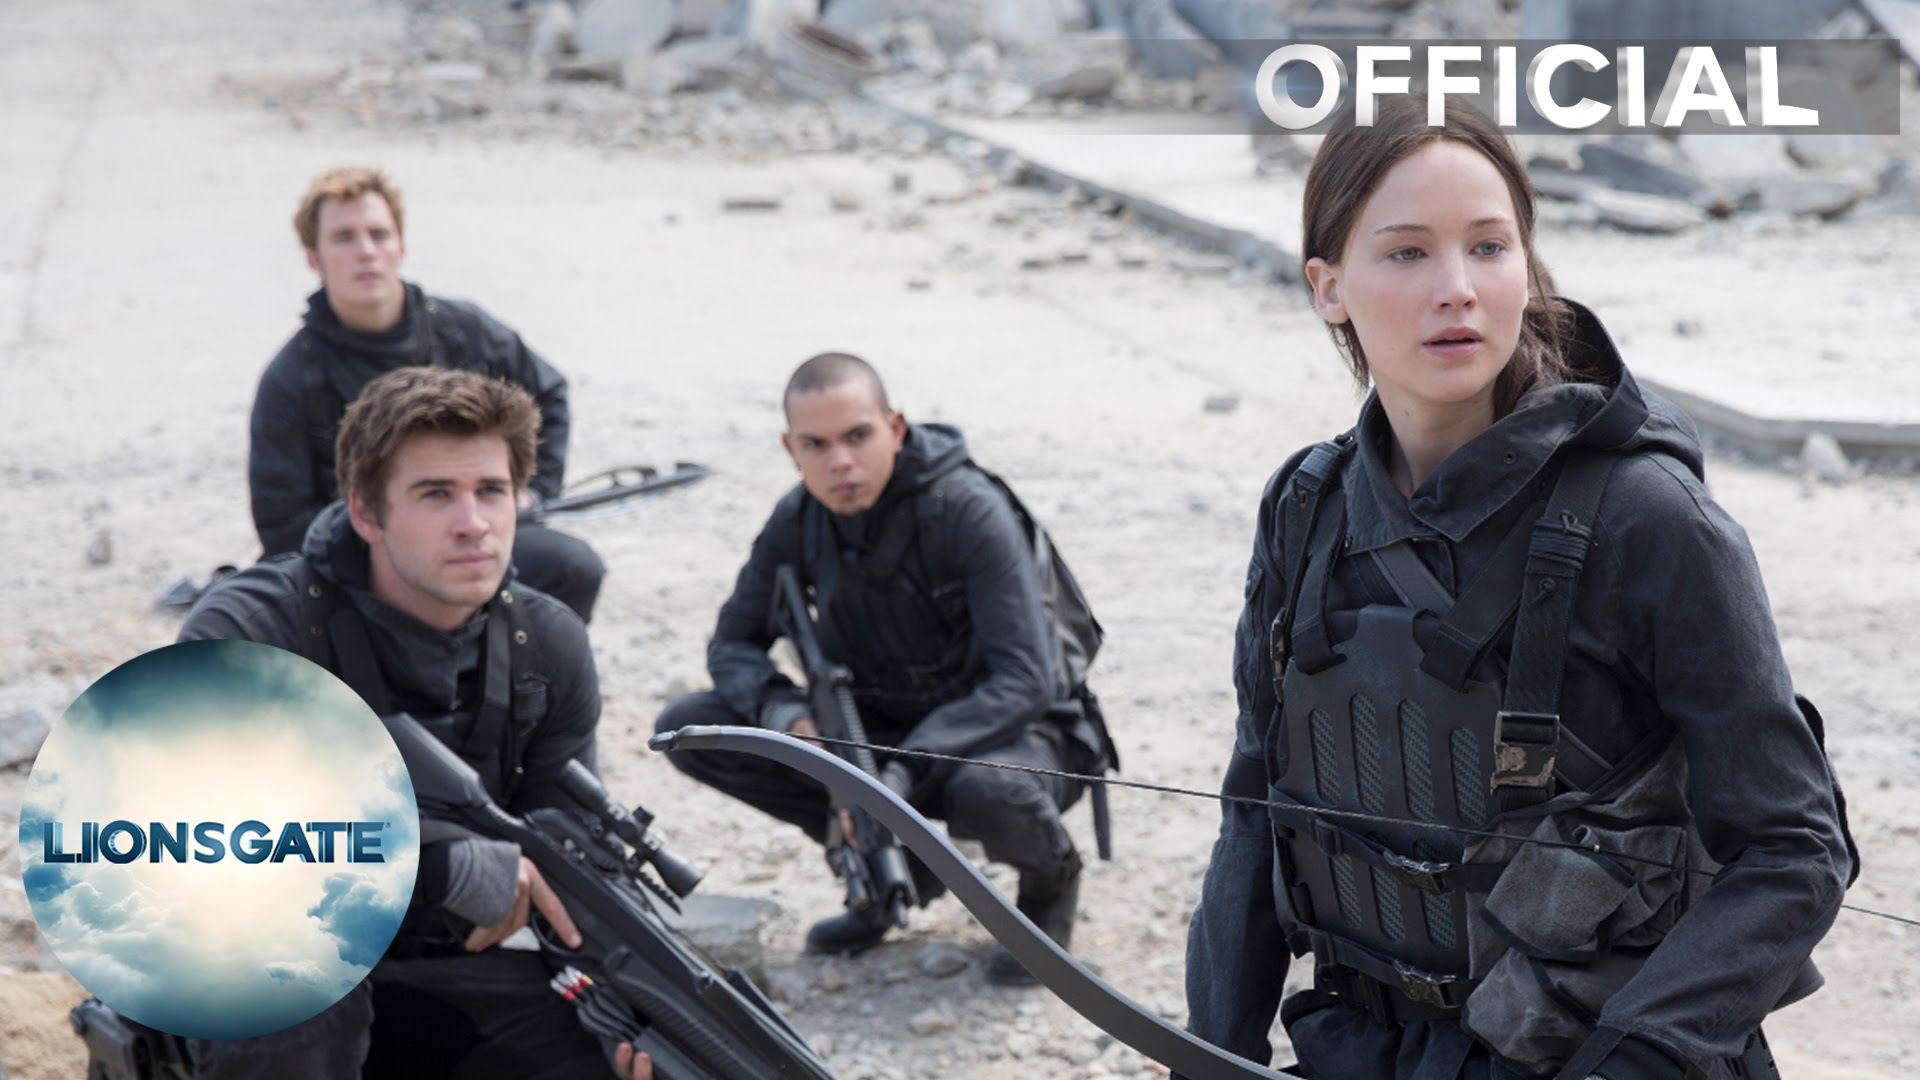 The Hunger Games: Mockingjay Part 2 – EPIC FINAL TRAILER – In Cinemas Nov 19